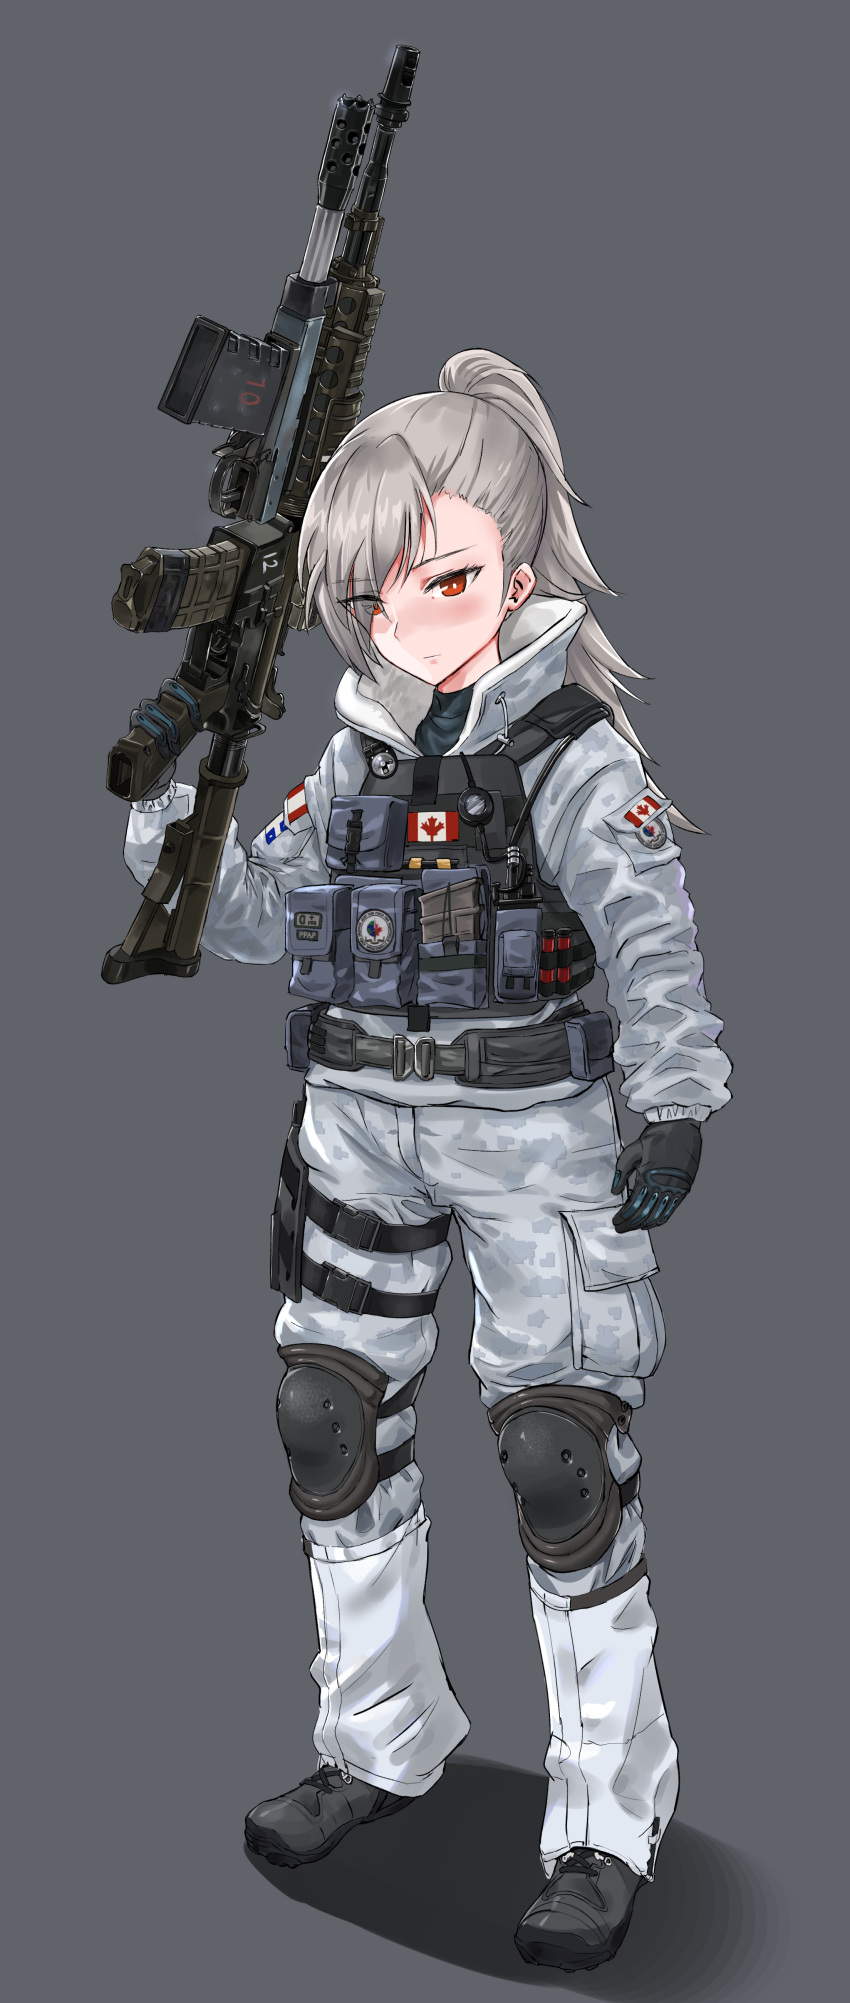 1girl absurdres belt buck_(rainbow_six_siege) camouflage canadian_flag closers cosplay crossover digital_camouflage eyebrows_visible_through_hair eyes_visible_through_hair frost_(rainbow_six_siege) full_body gloves gun hair_over_one_eye highres jacket knee_pads load_bearing_vest operator pants ponytail pouch rainbow_six_siege red_eyes silver_hair solo ssamjang_(misosan) tactical_clothes tina_(closers) trigger_discipline weapon weapon_request